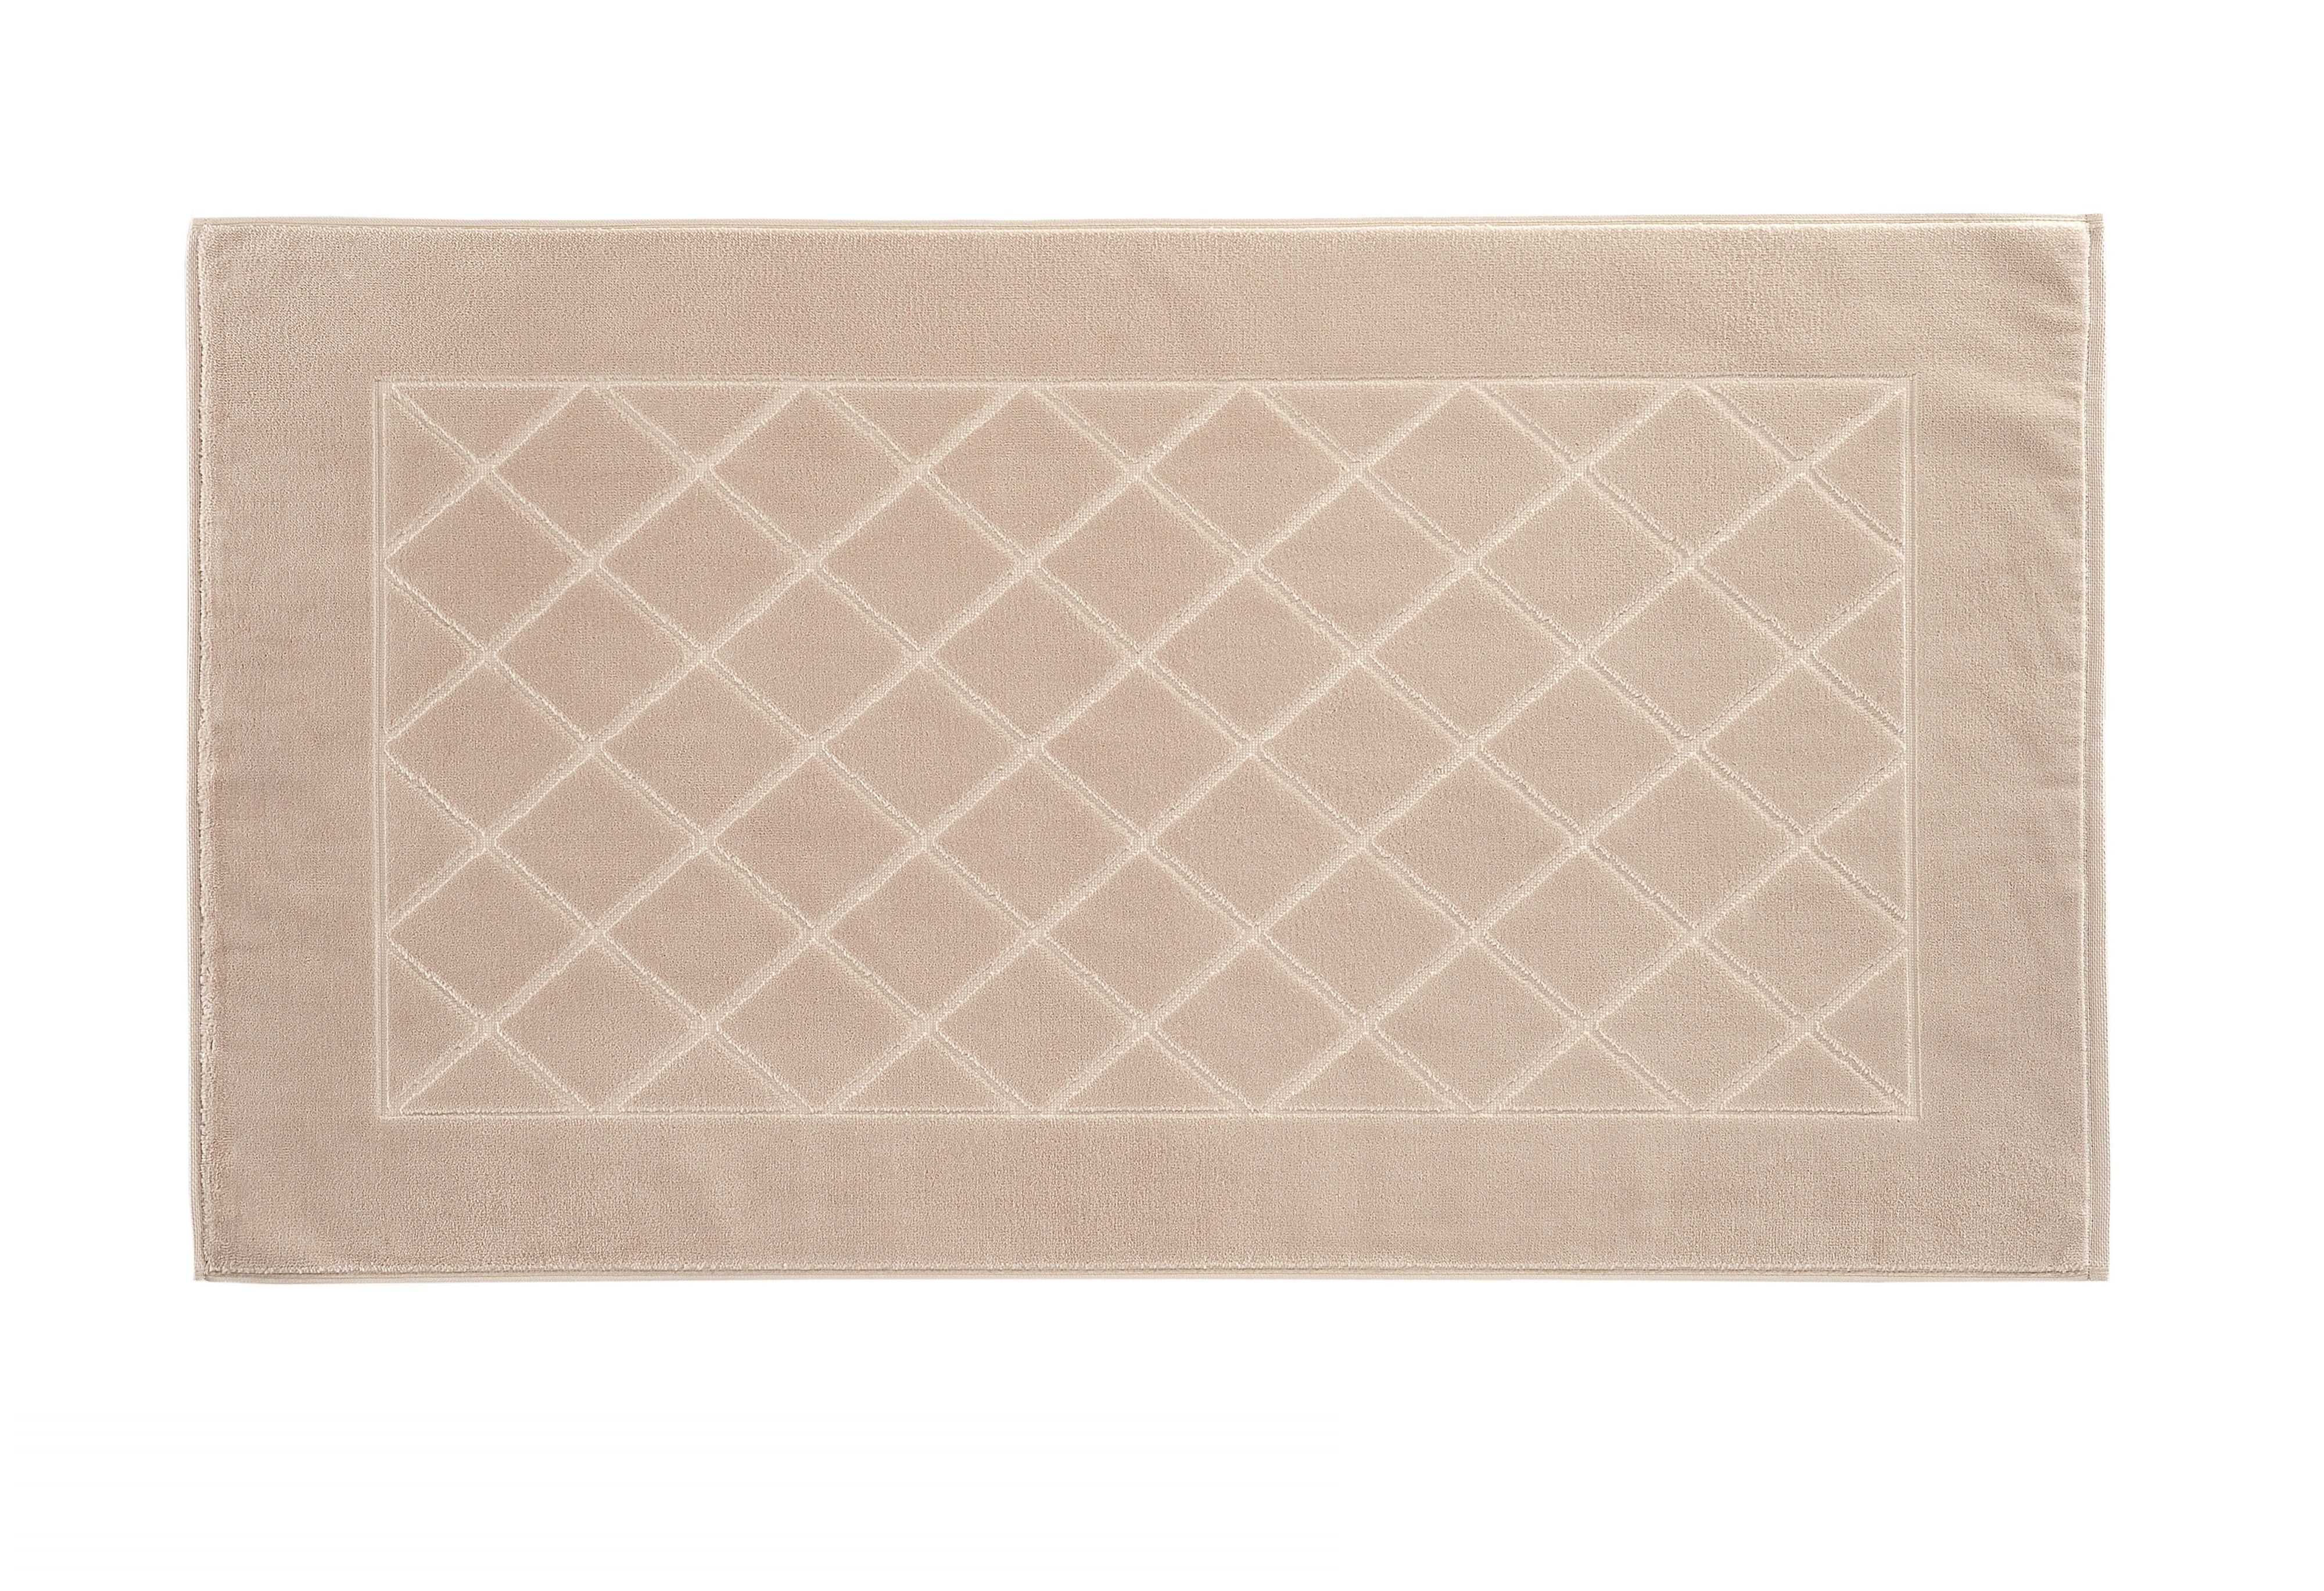 Dreams bath mat range in stone